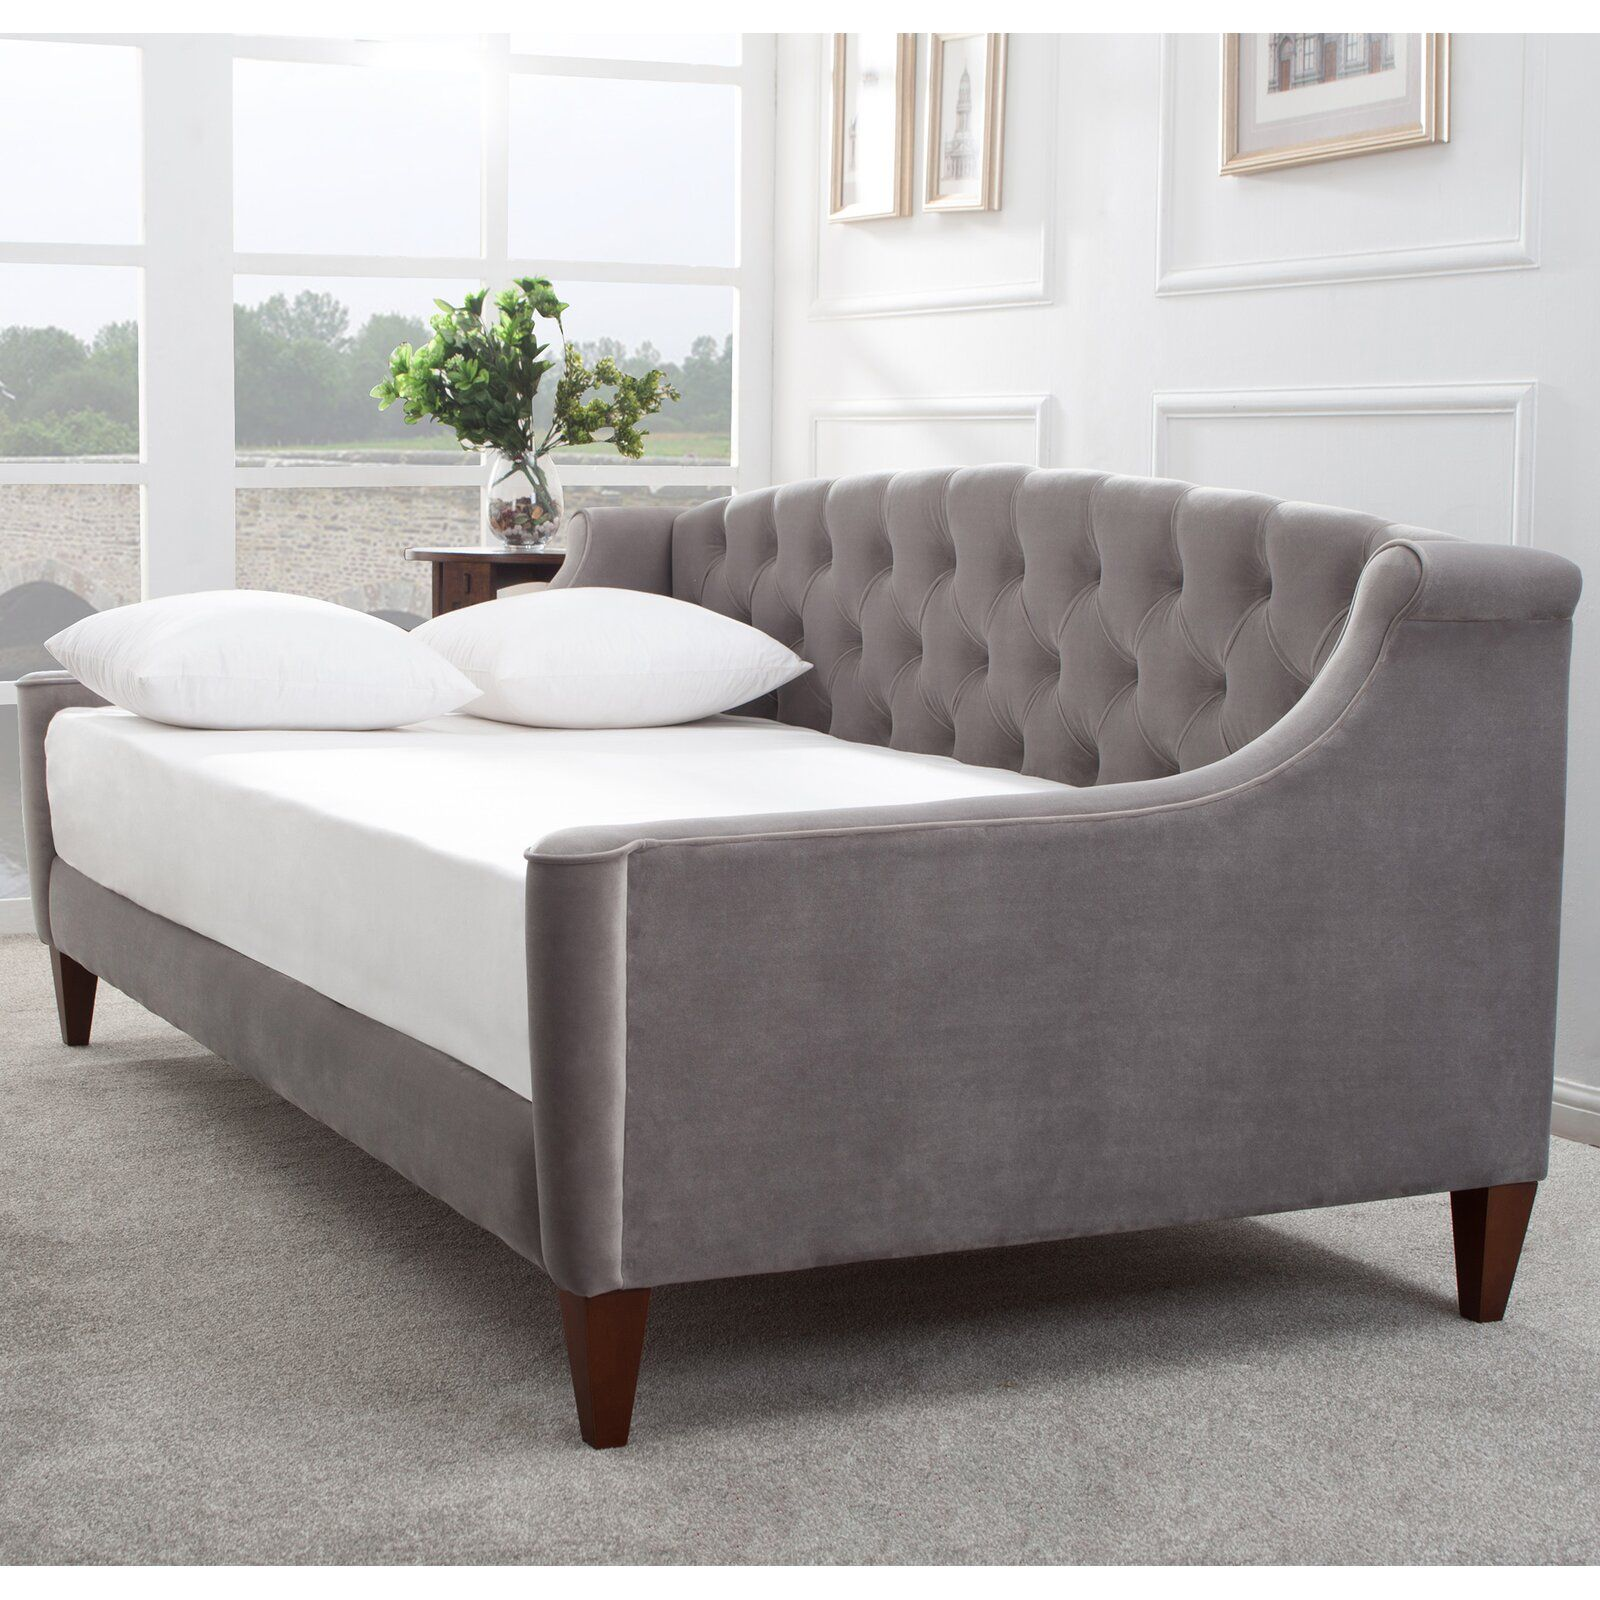 Gilmore Twin Daybed Upholstered sofa, Furniture